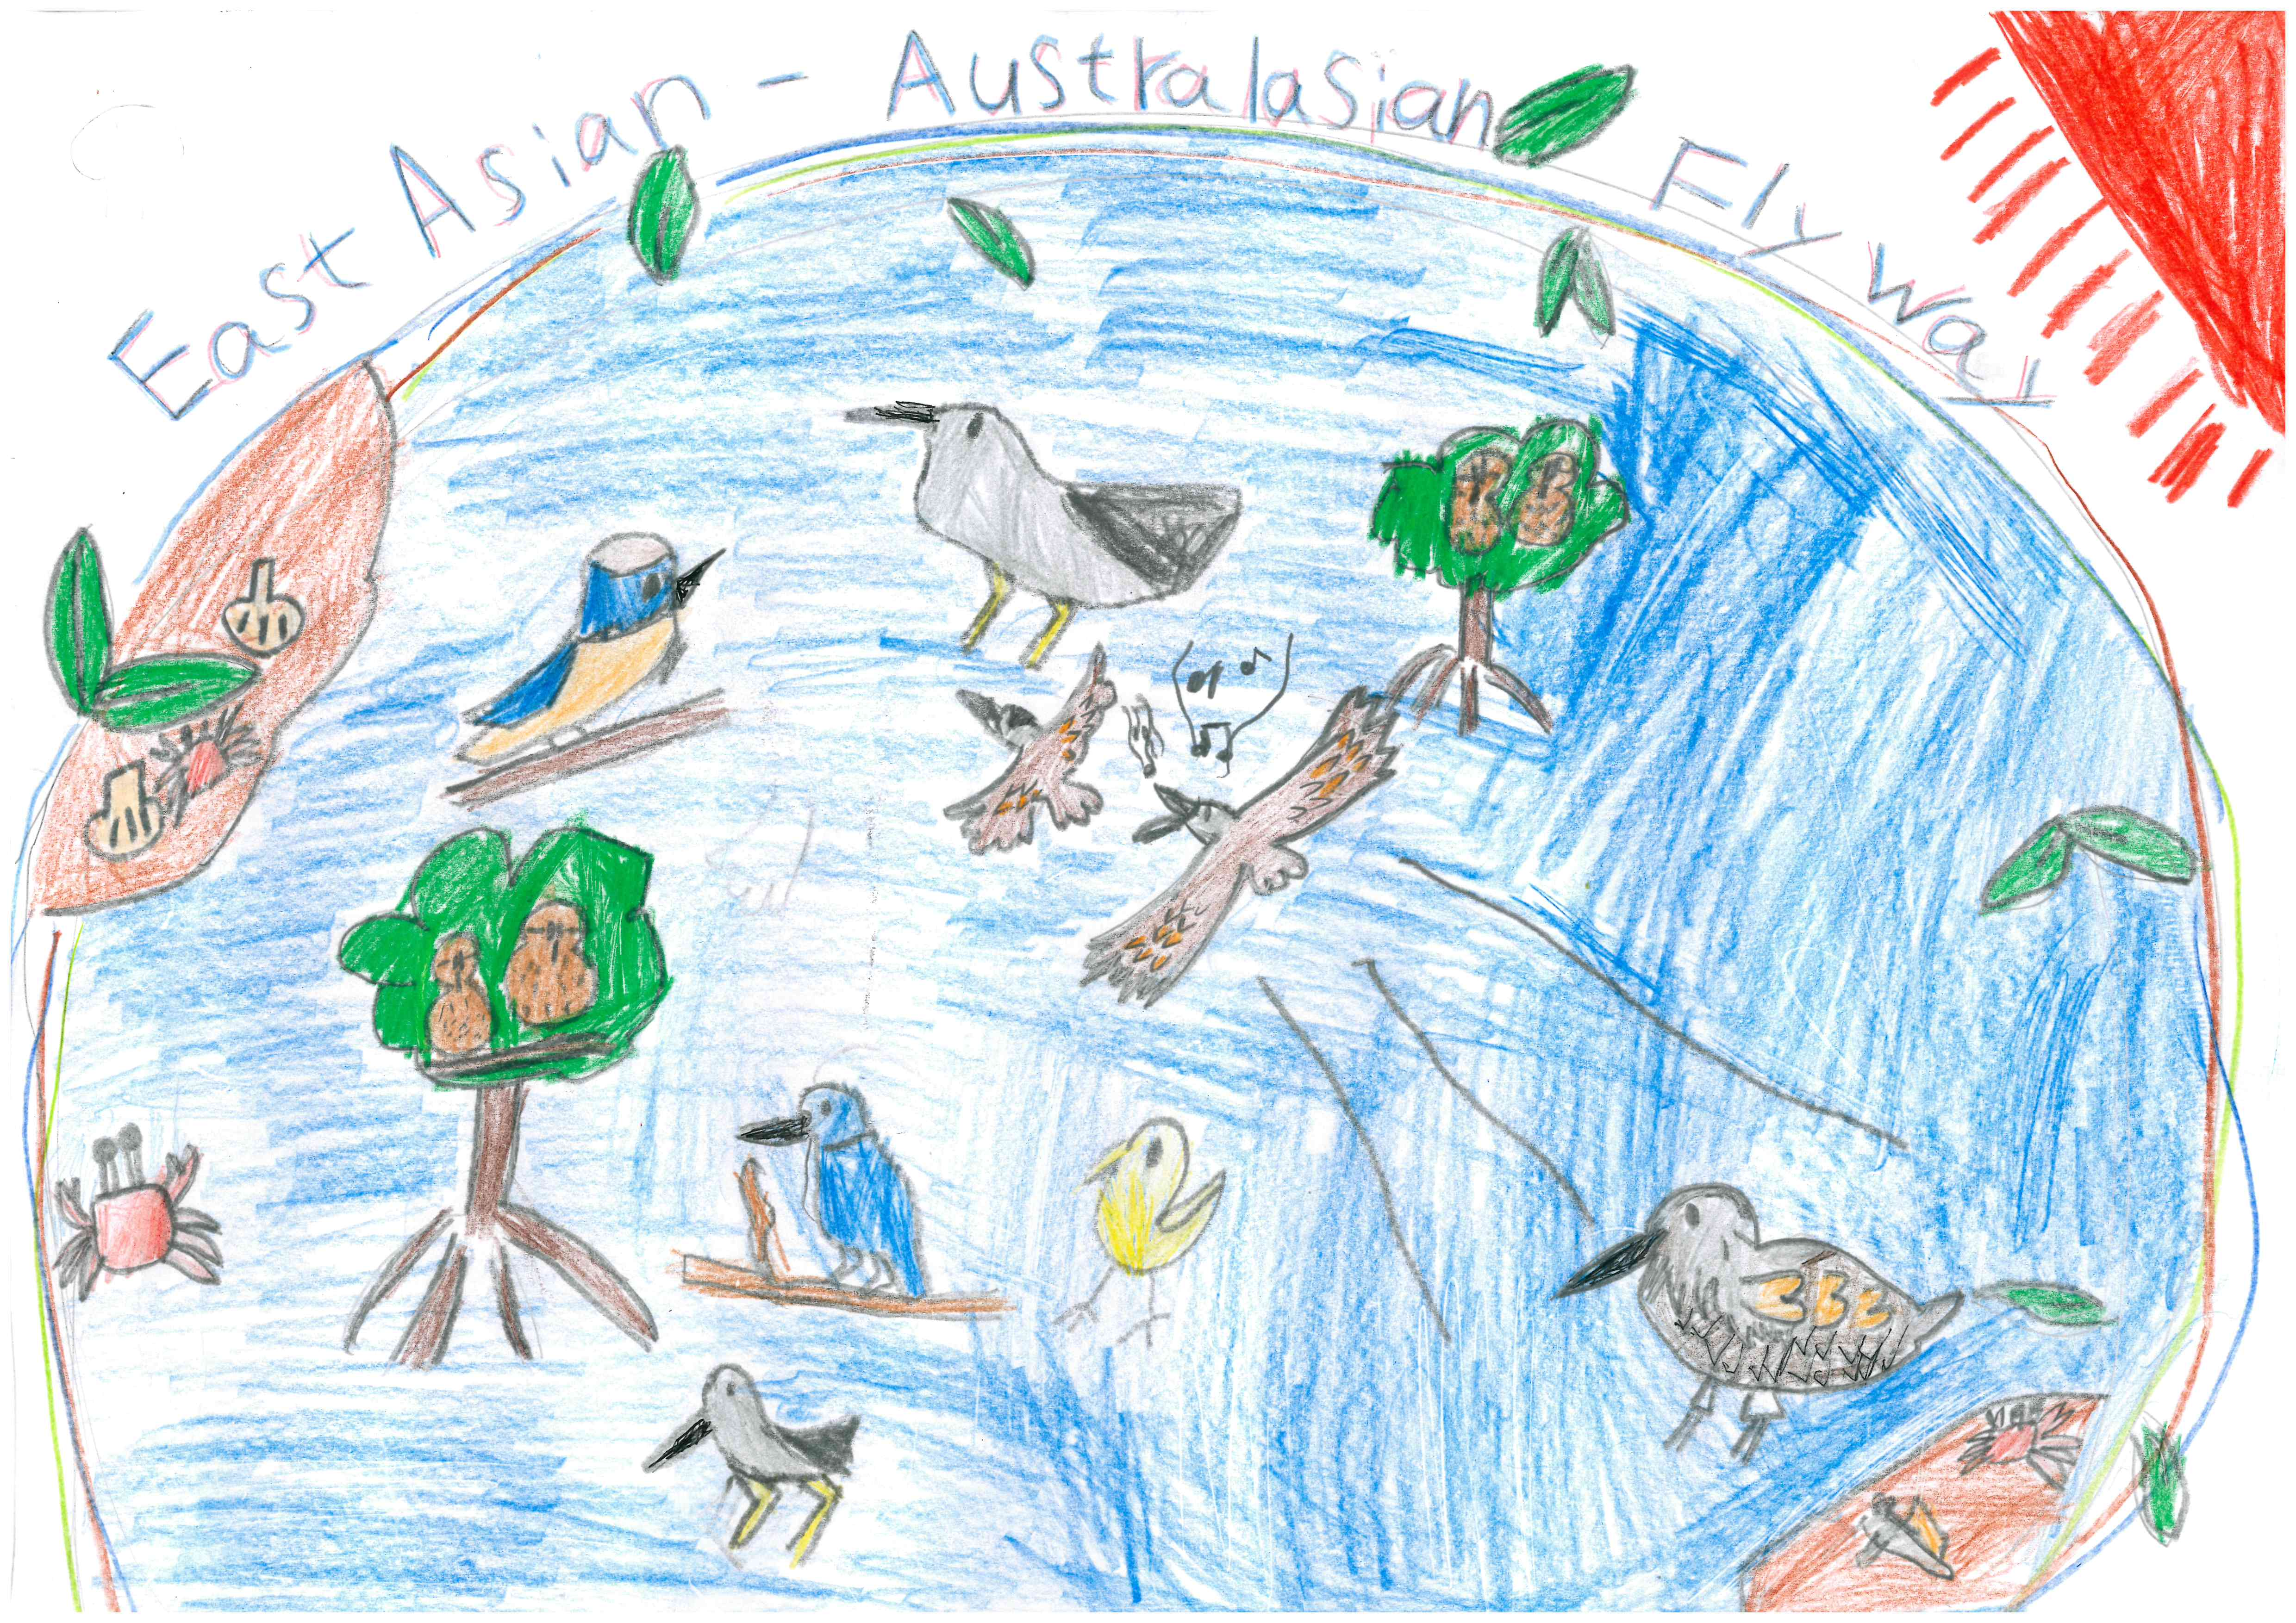 Artwork submitted by Shion Kinjo (8 years old) for the EAAFP Knots Drawing Competition